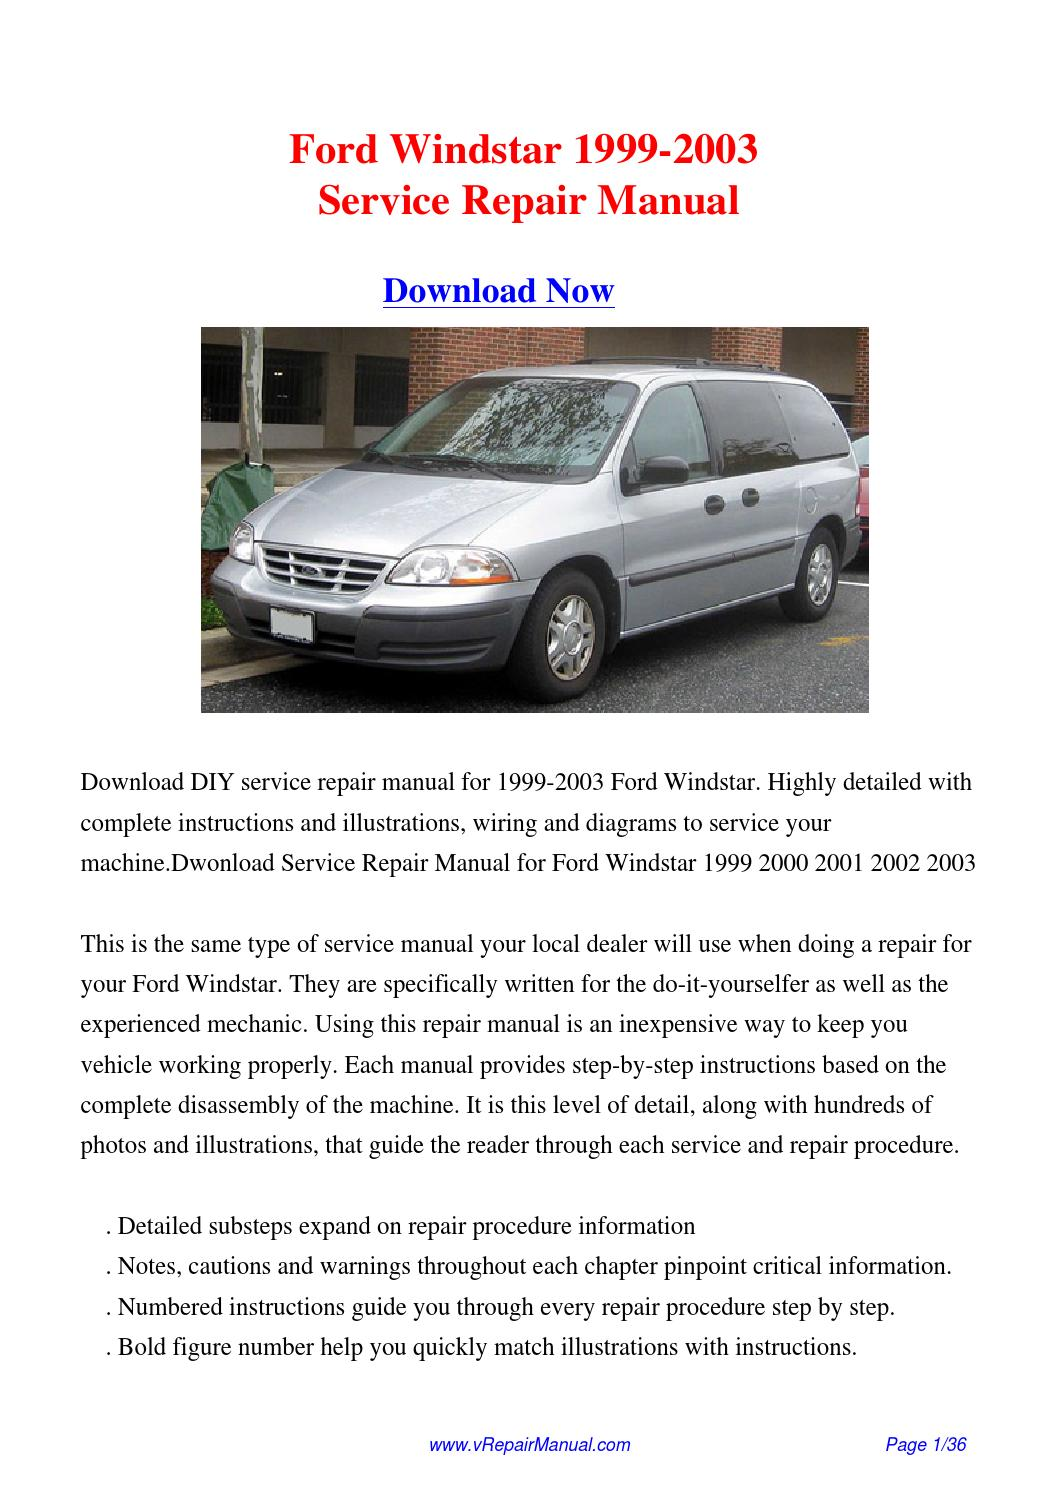 1999 2003 ford windstar service repair manual pdf by david 1998 Ford Windstar Repair Manual 2003 ford windstar repair manual